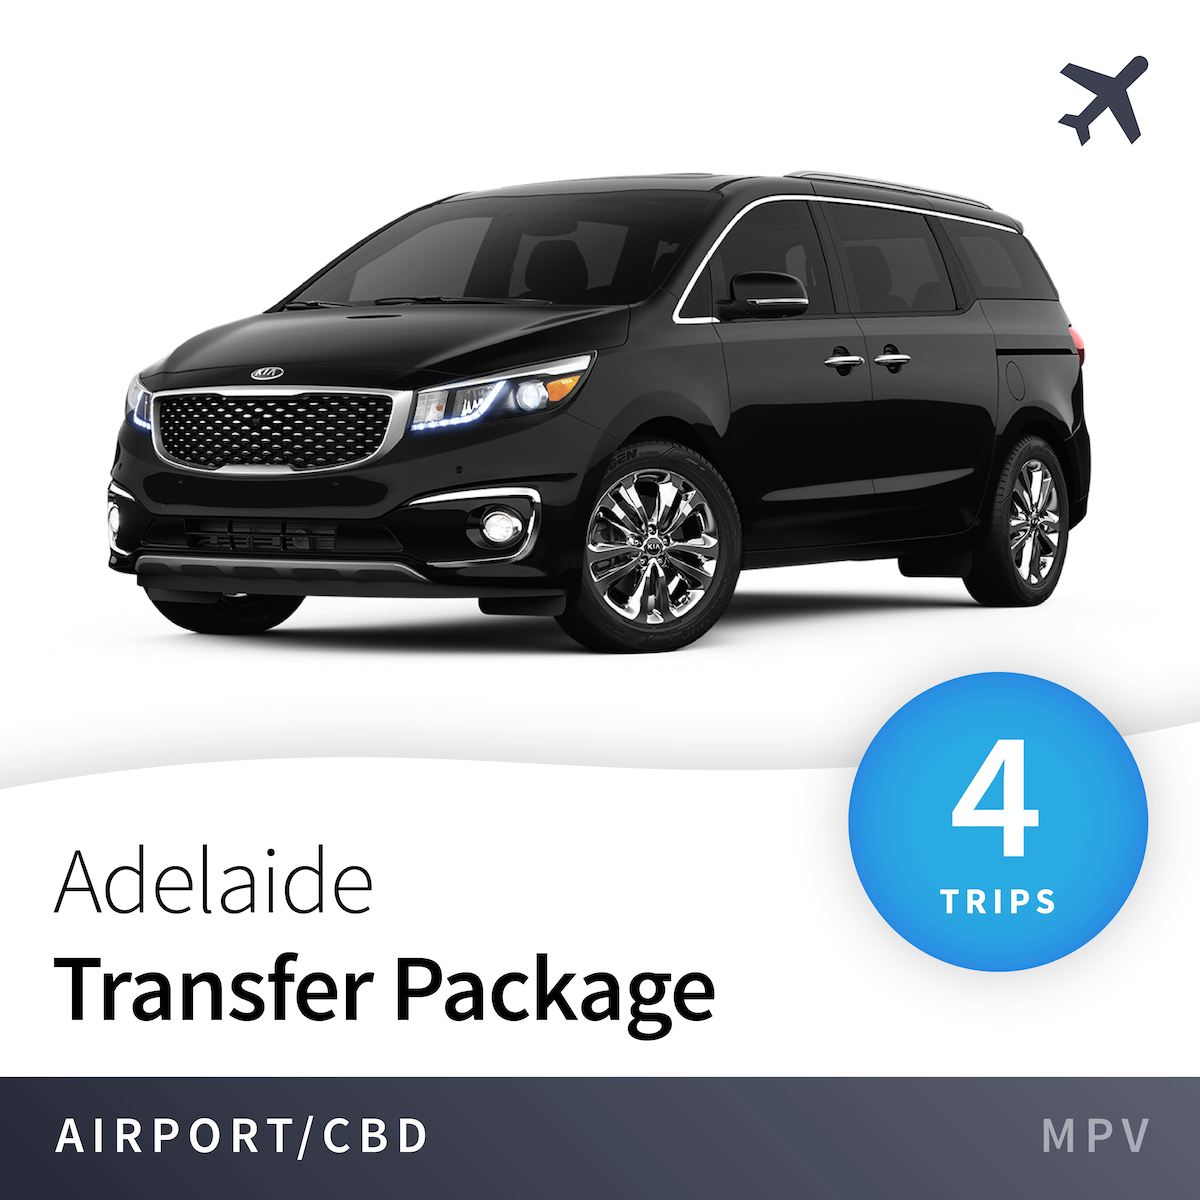 Adelaide Airport Transfer Package - MPV (4 Trips) 3